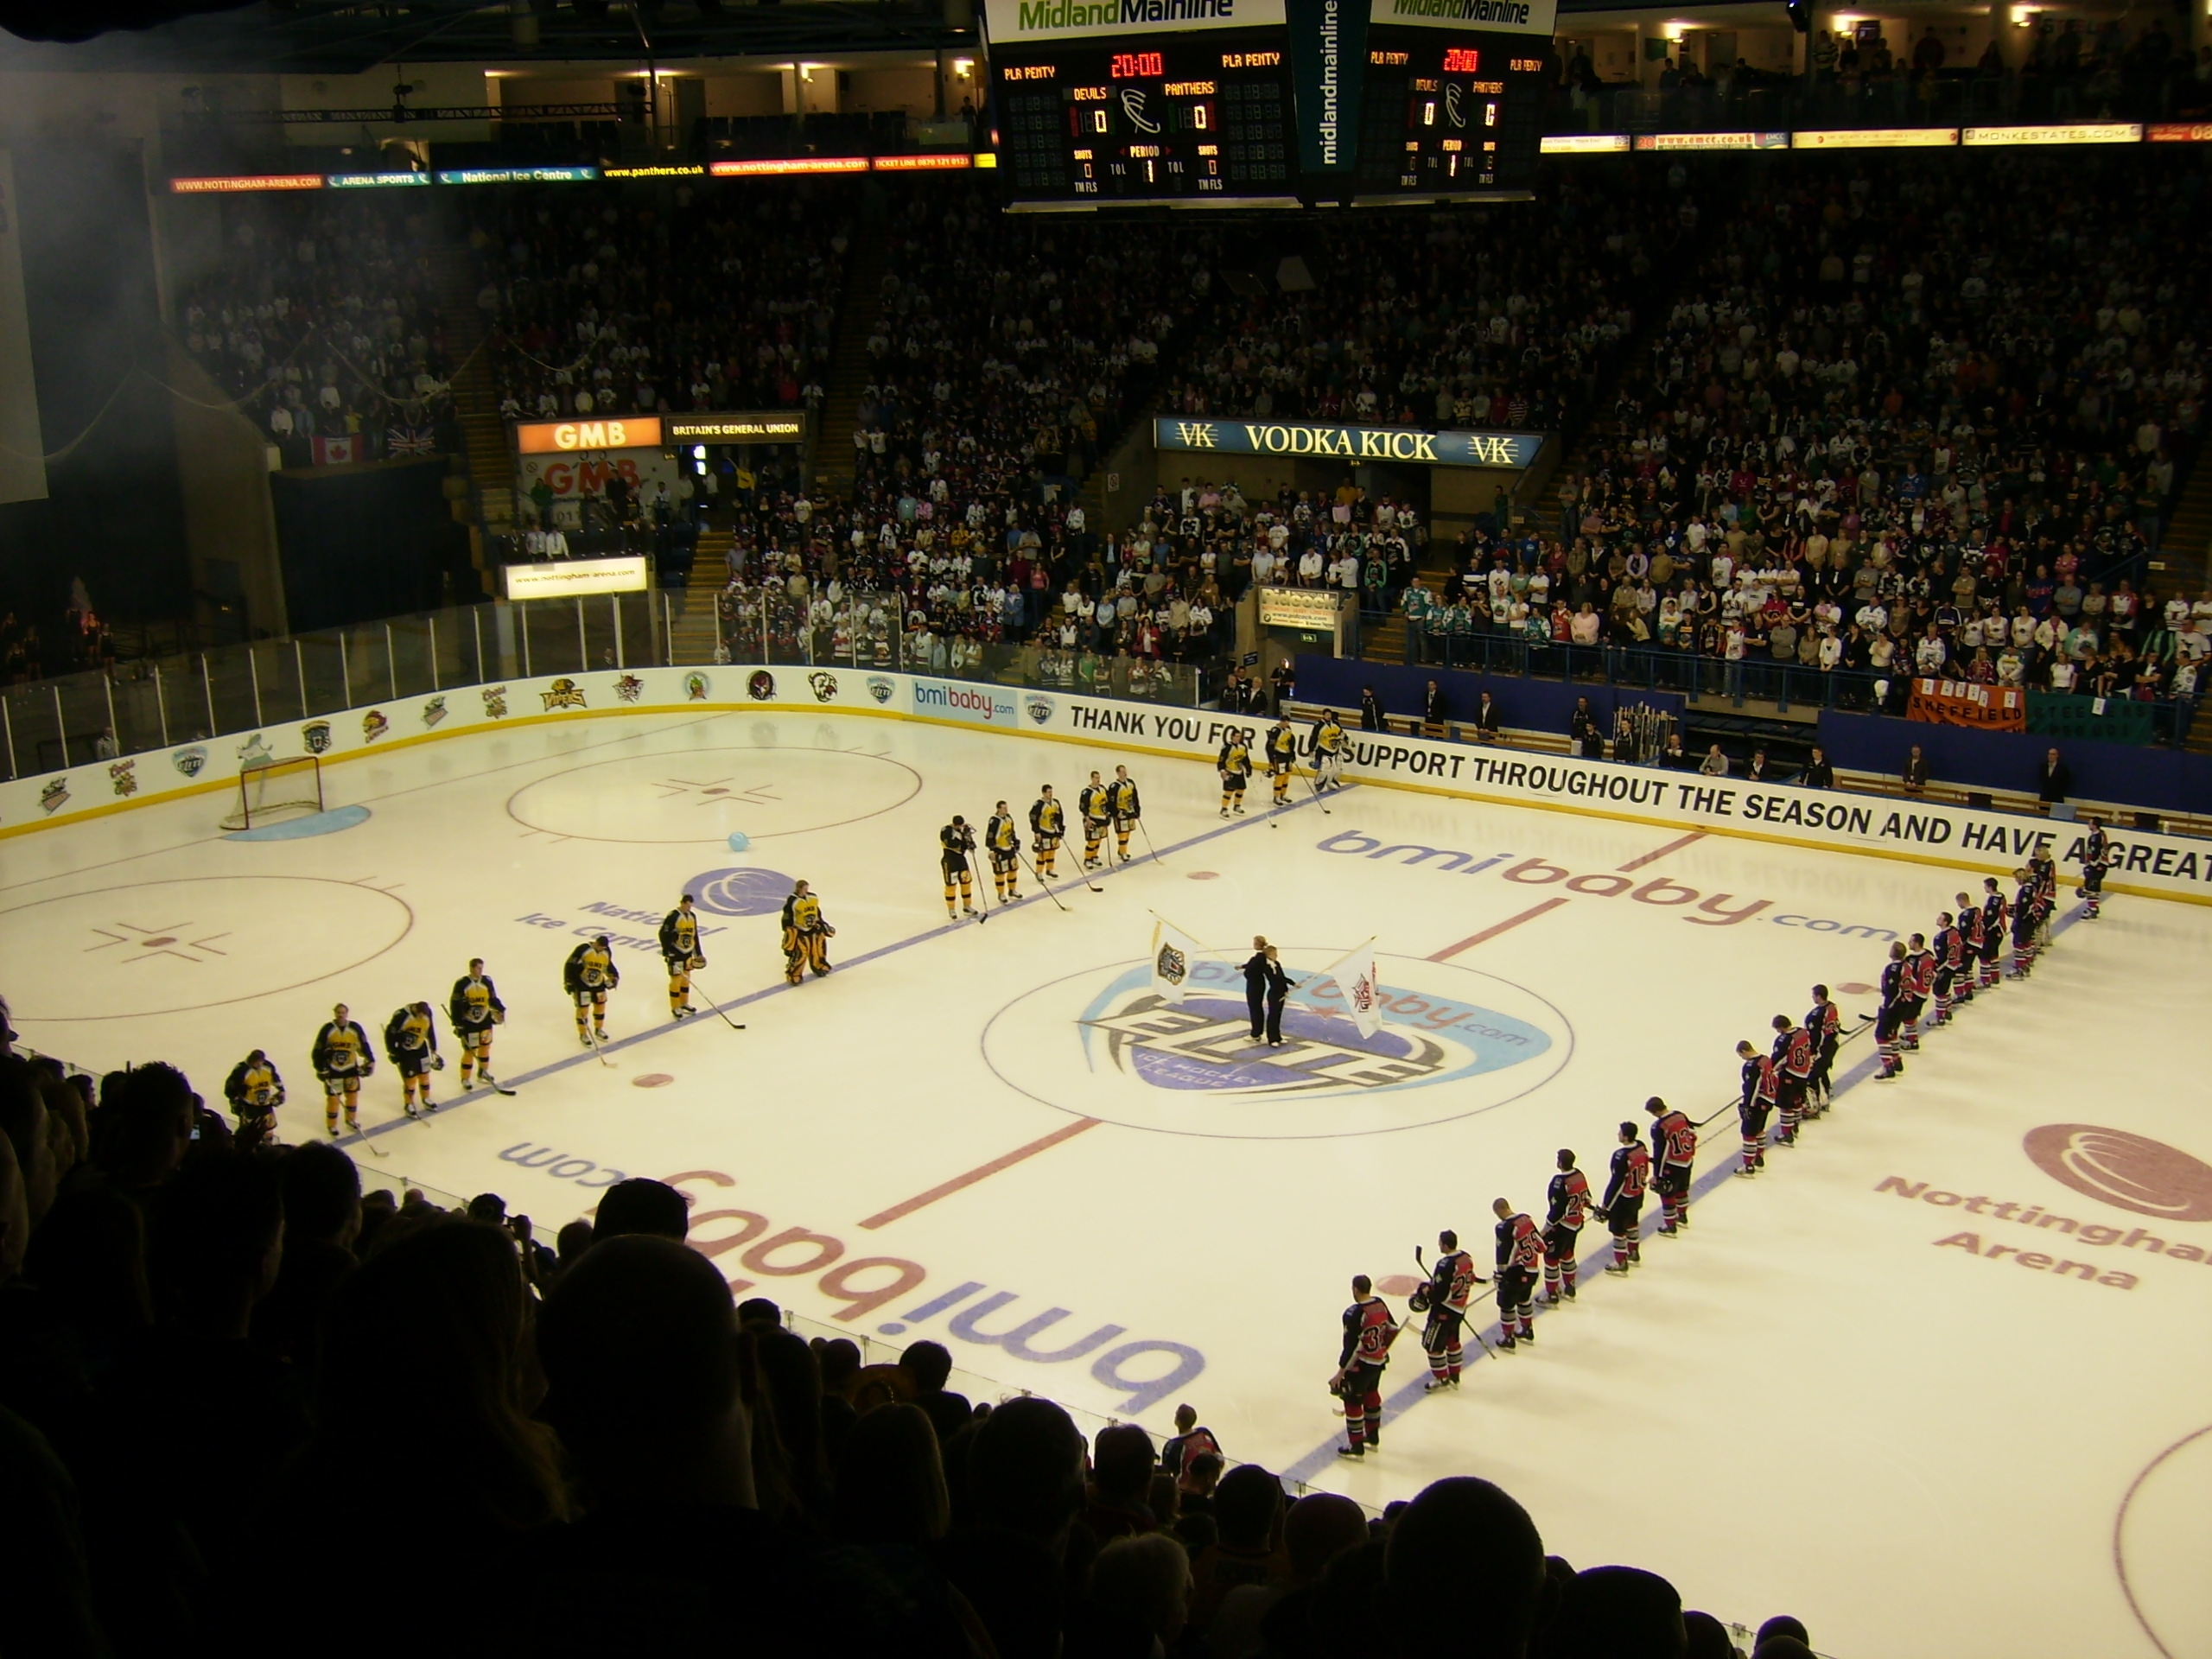 A Picture of two opposing EIHL Teams Playing Ice Hockey